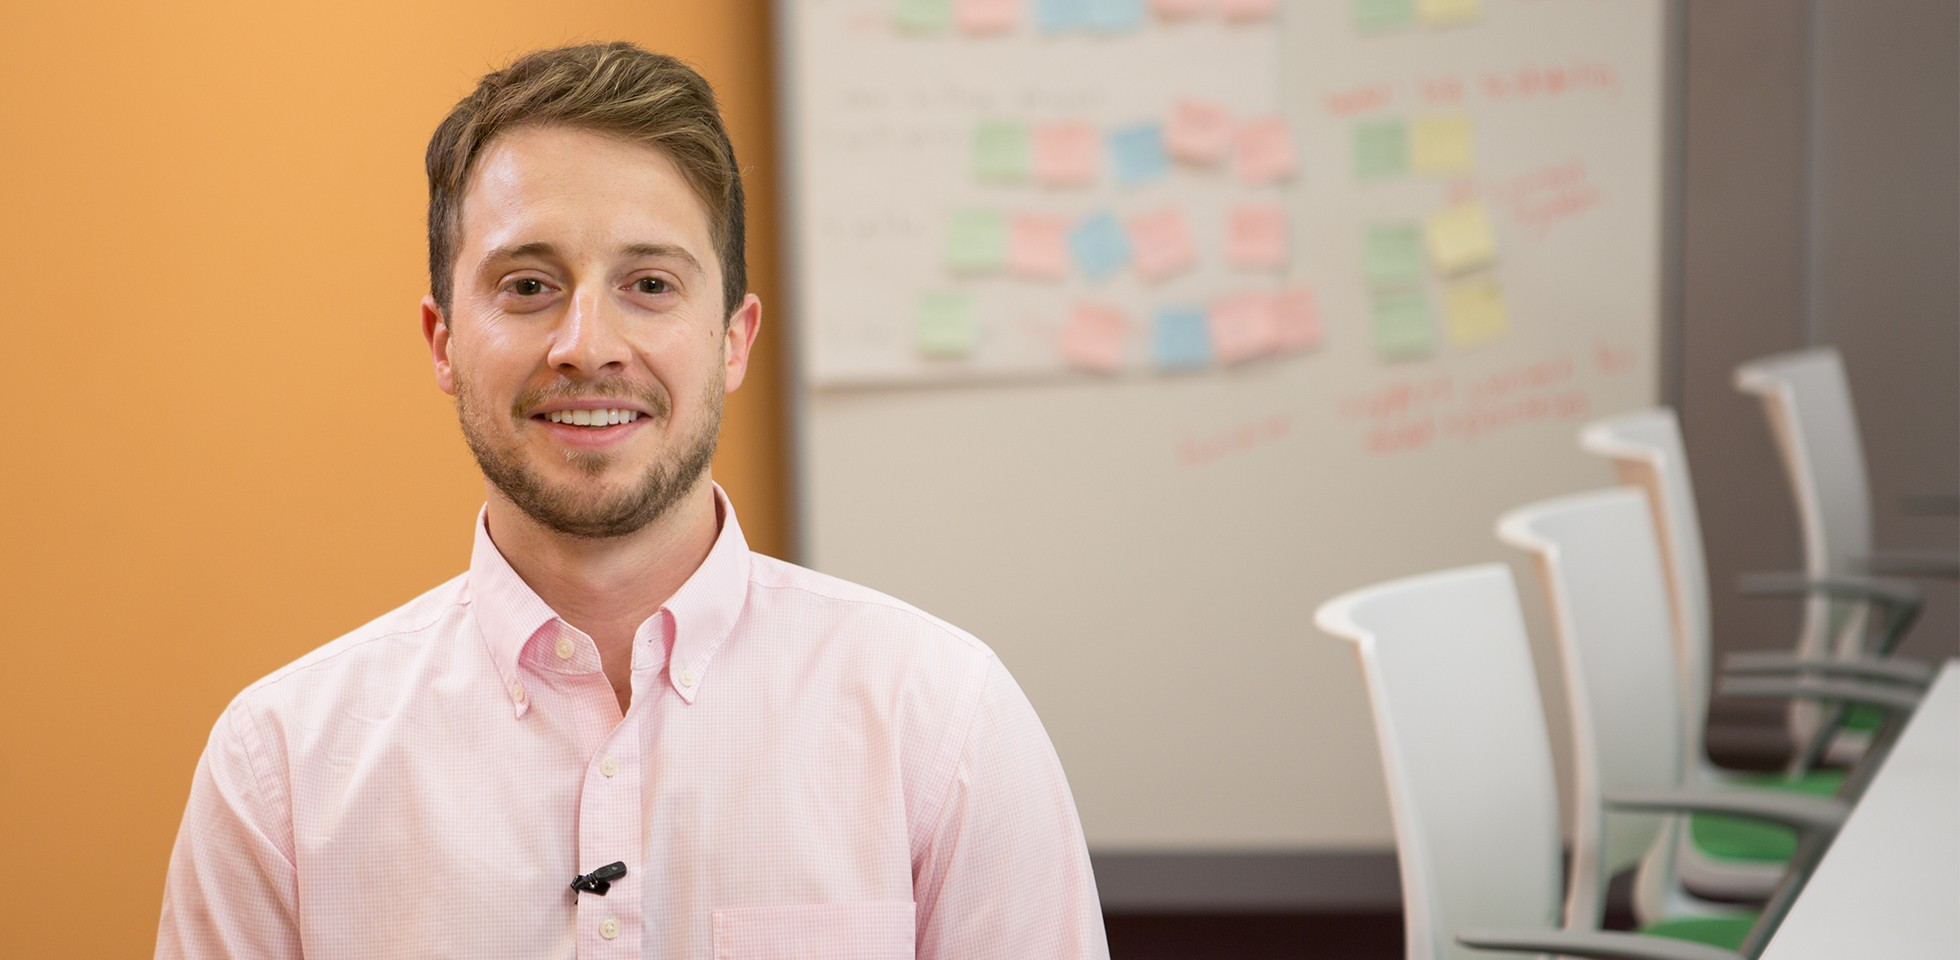 David Cooper, Product Manager - PagerDuty Careers